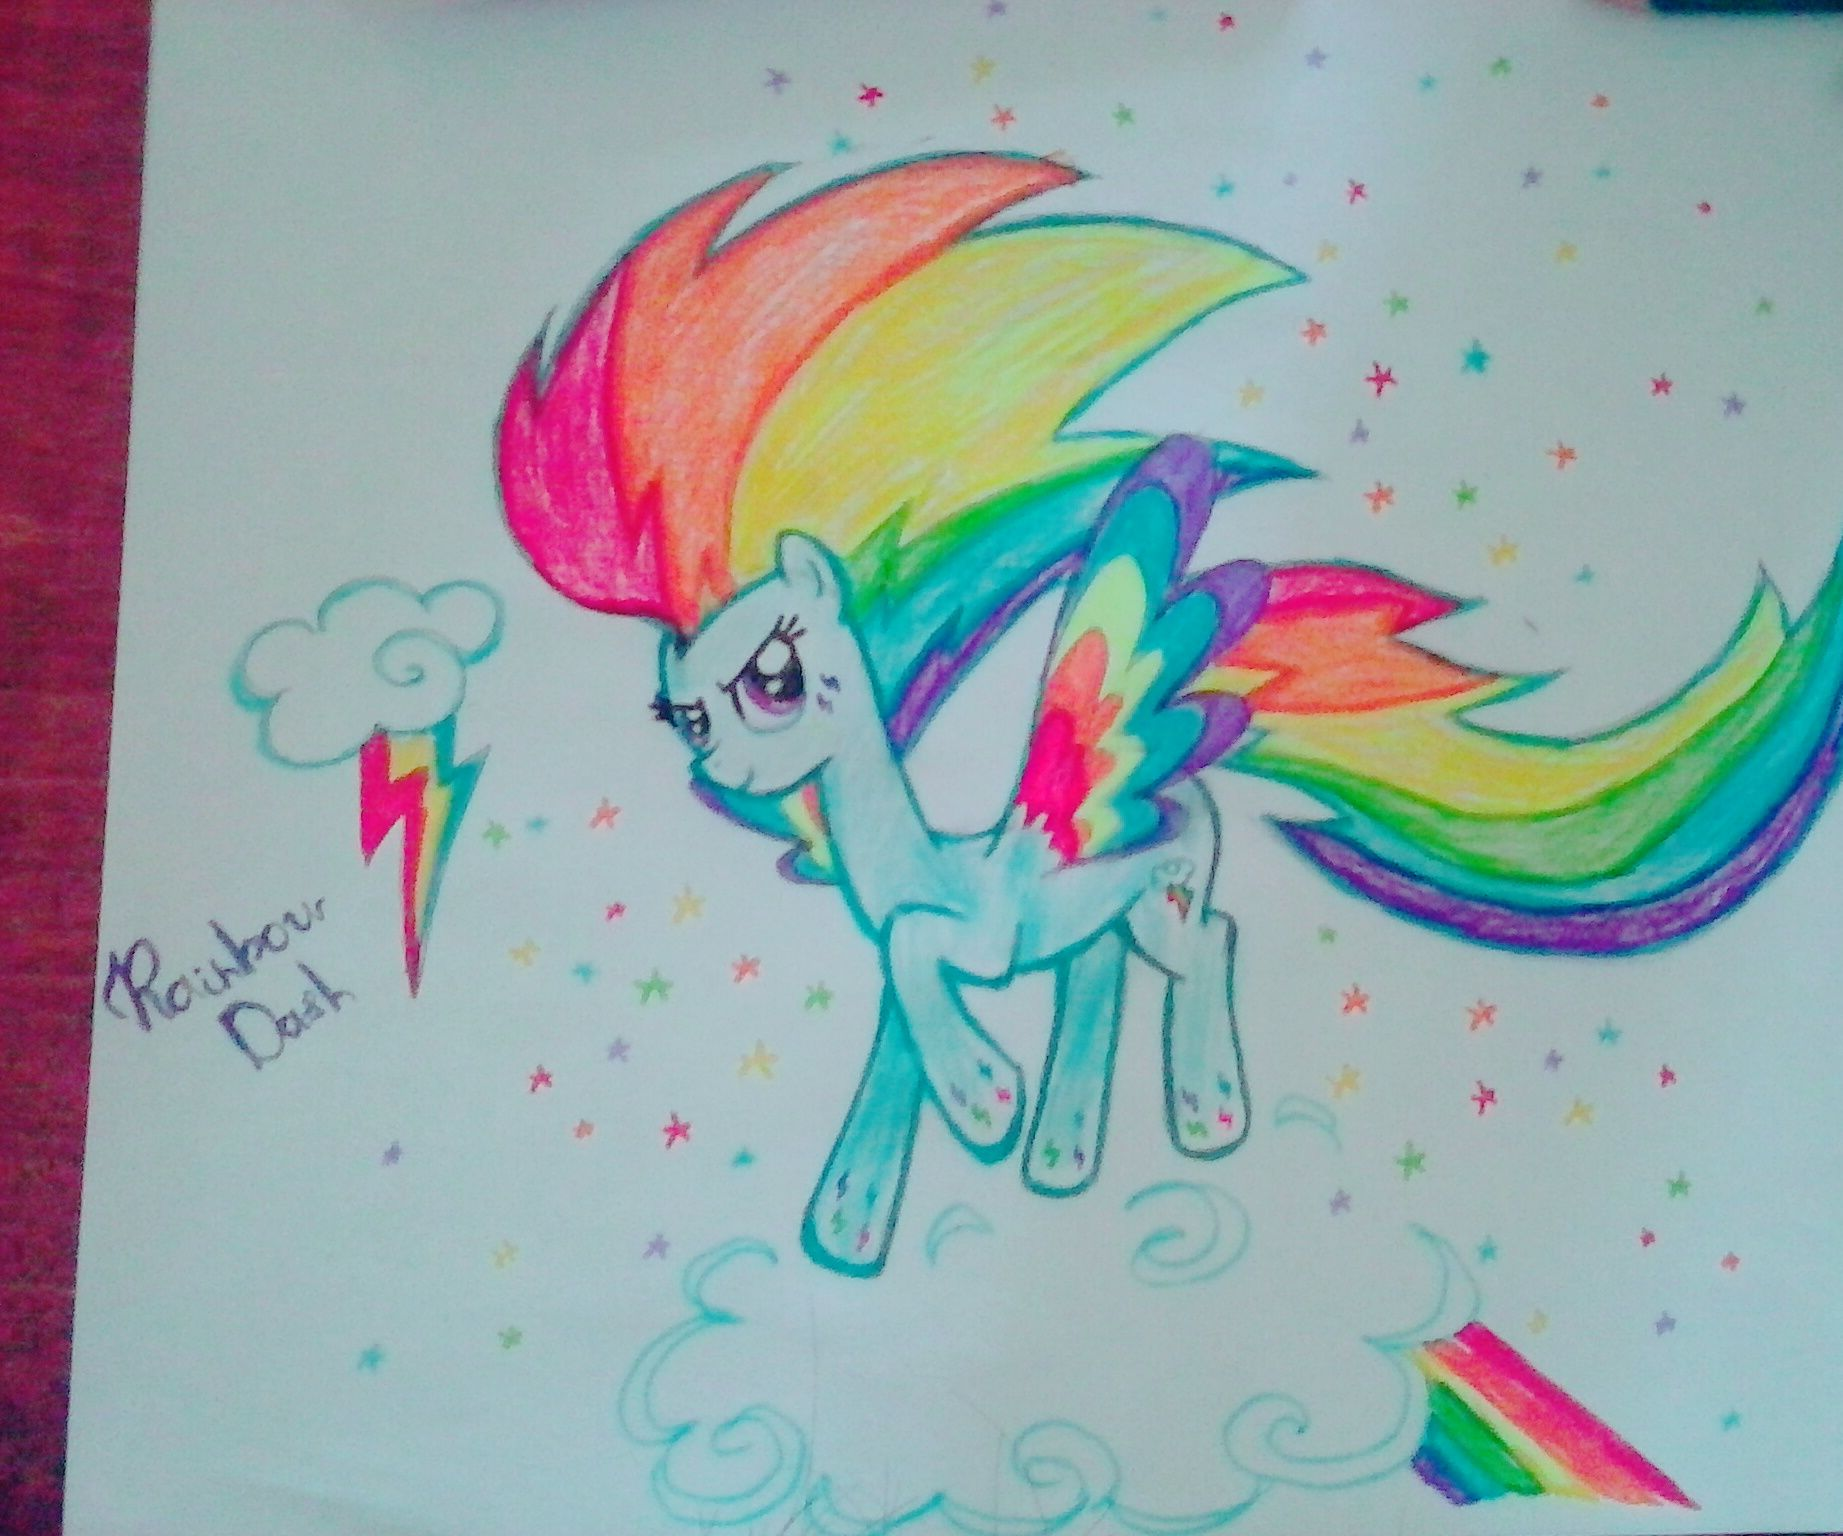 How to Draw Rainbow Dash From My Little Pony